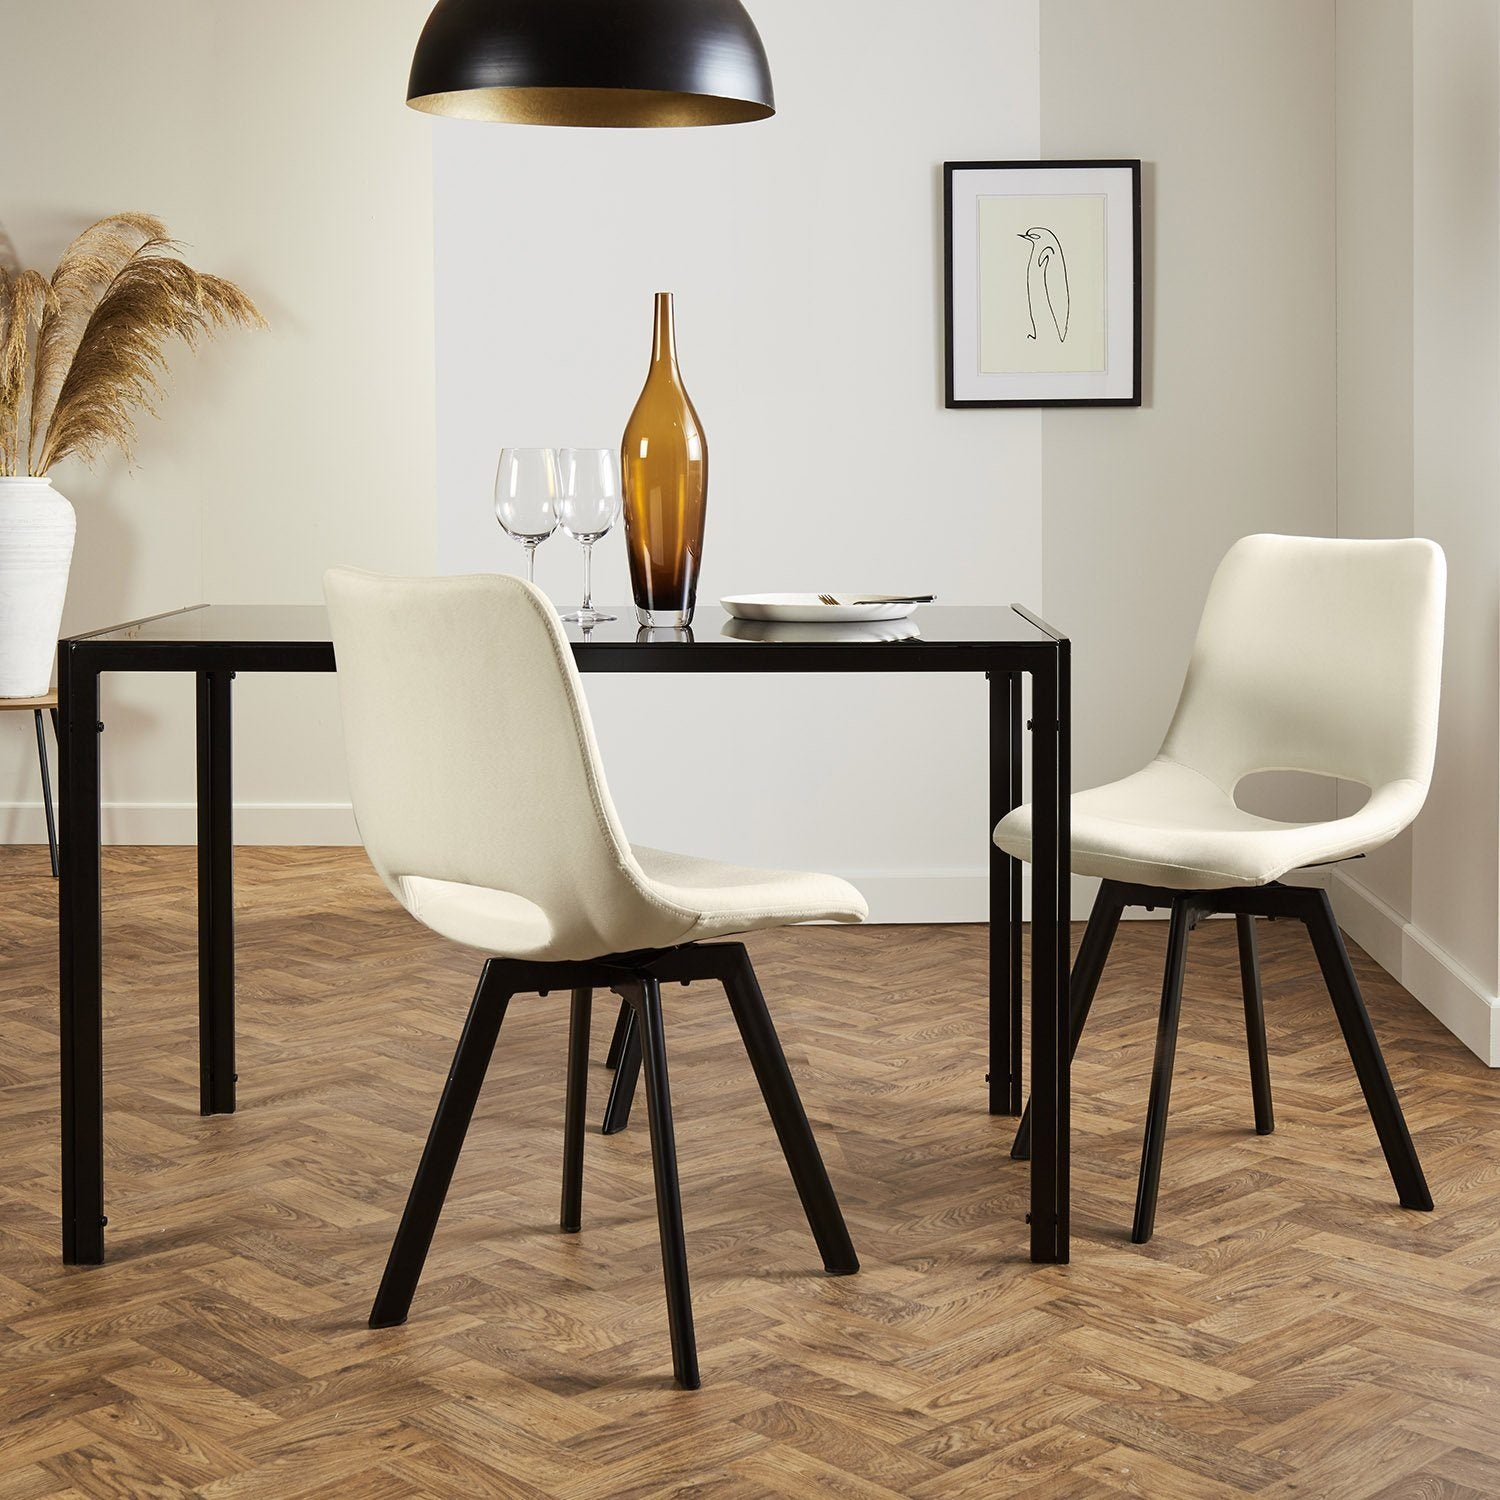 Margot dining chairs x2 - cream and black - Laura James